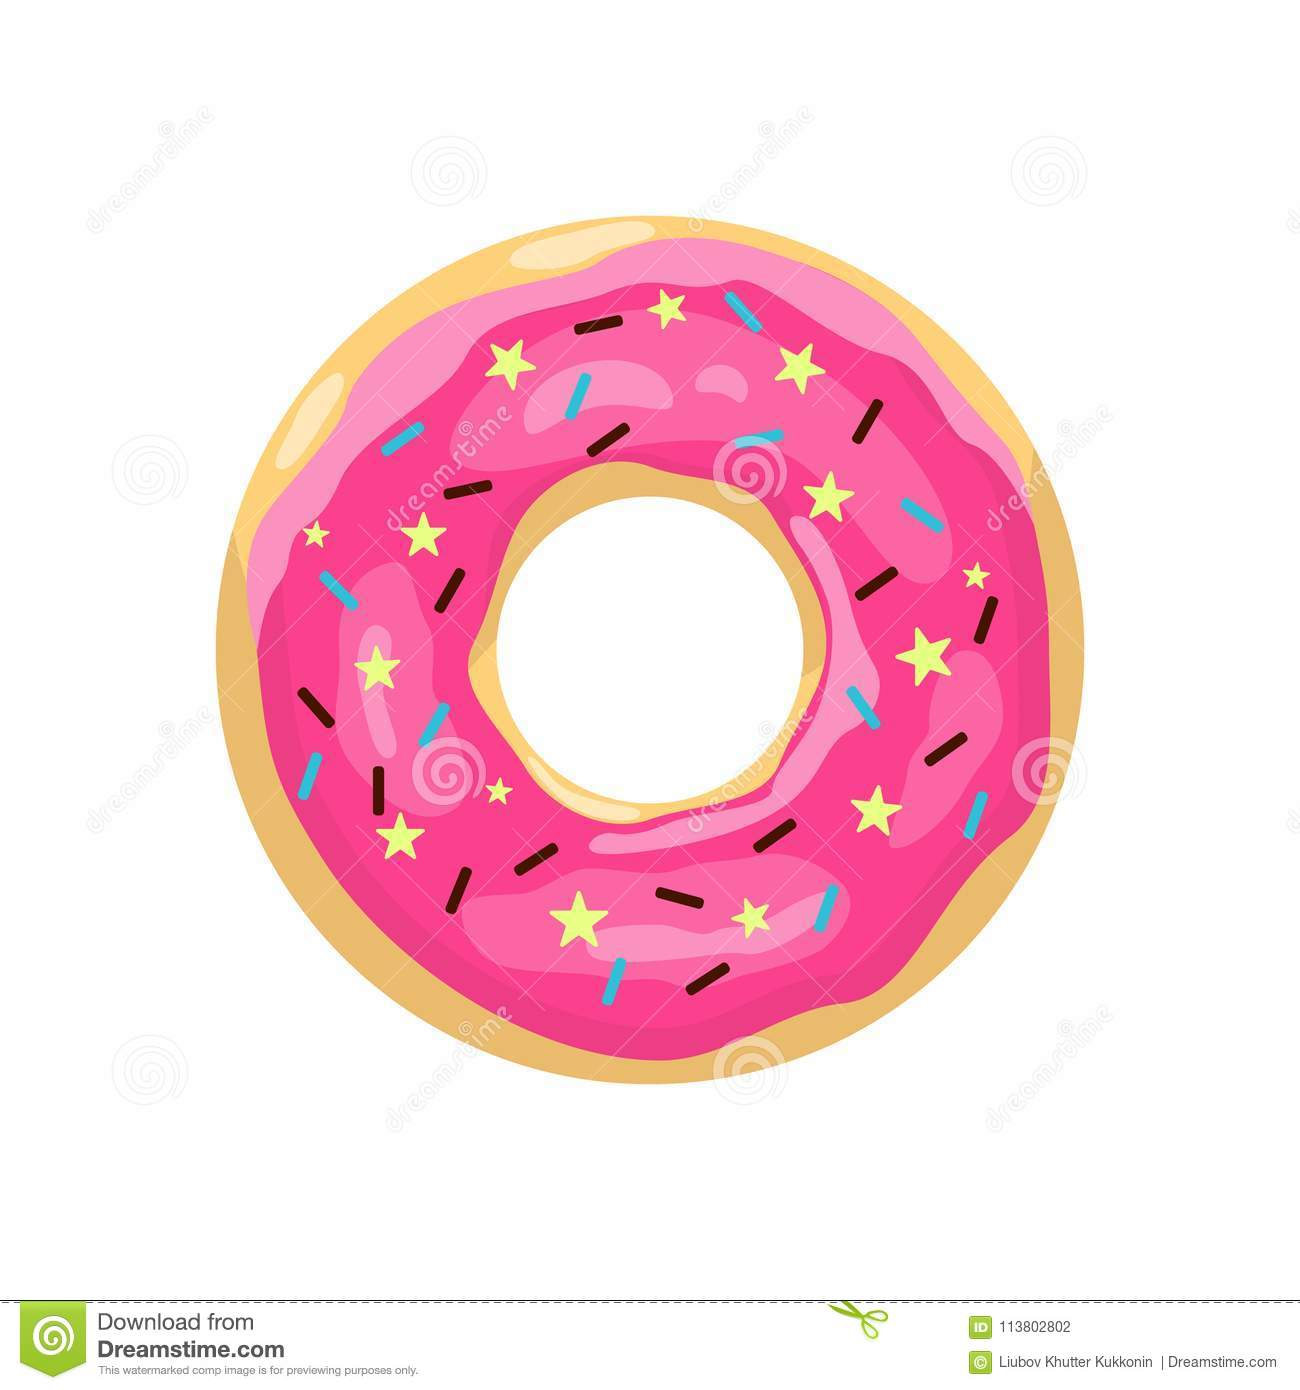 Cartoon Donut - Donut With Pink Glaze. Color Donut Icon. Cute Pink Cartoon Donut ...